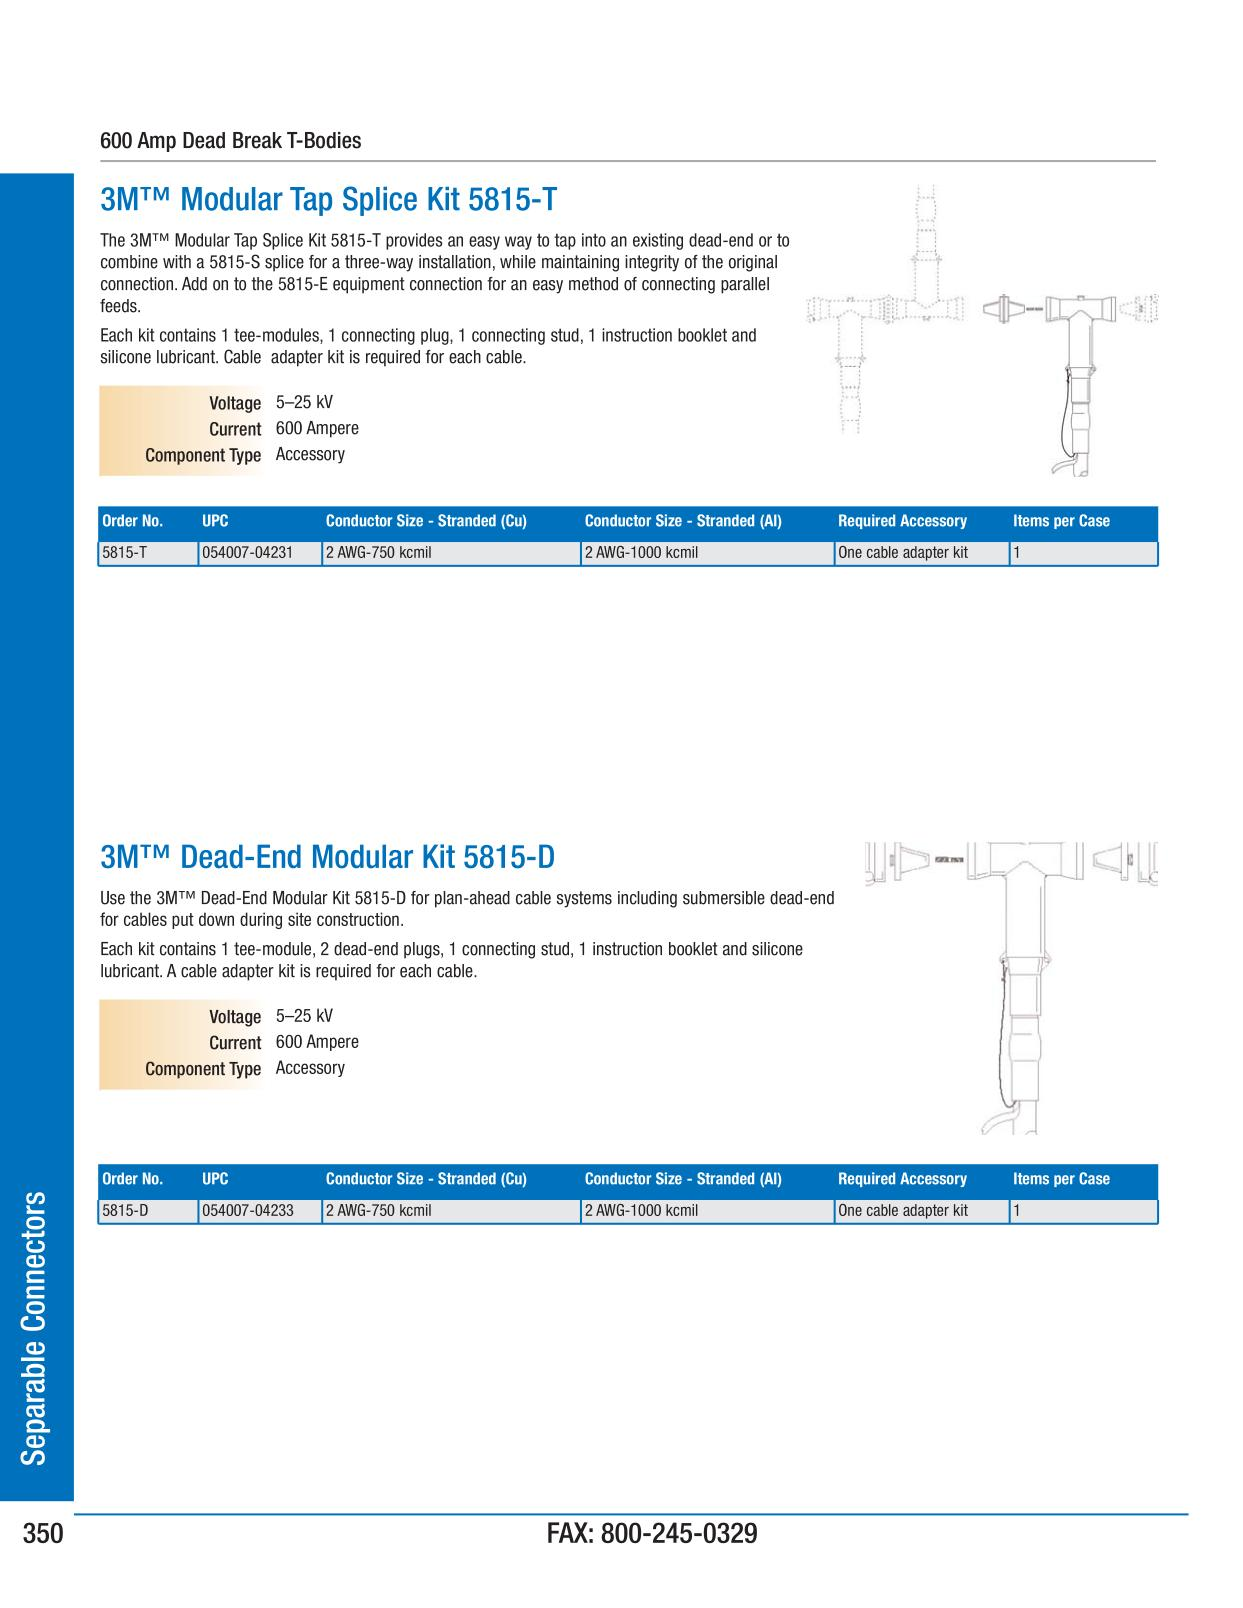 Separable connectors 3m electrical products page 351 keyboard keysfo Images